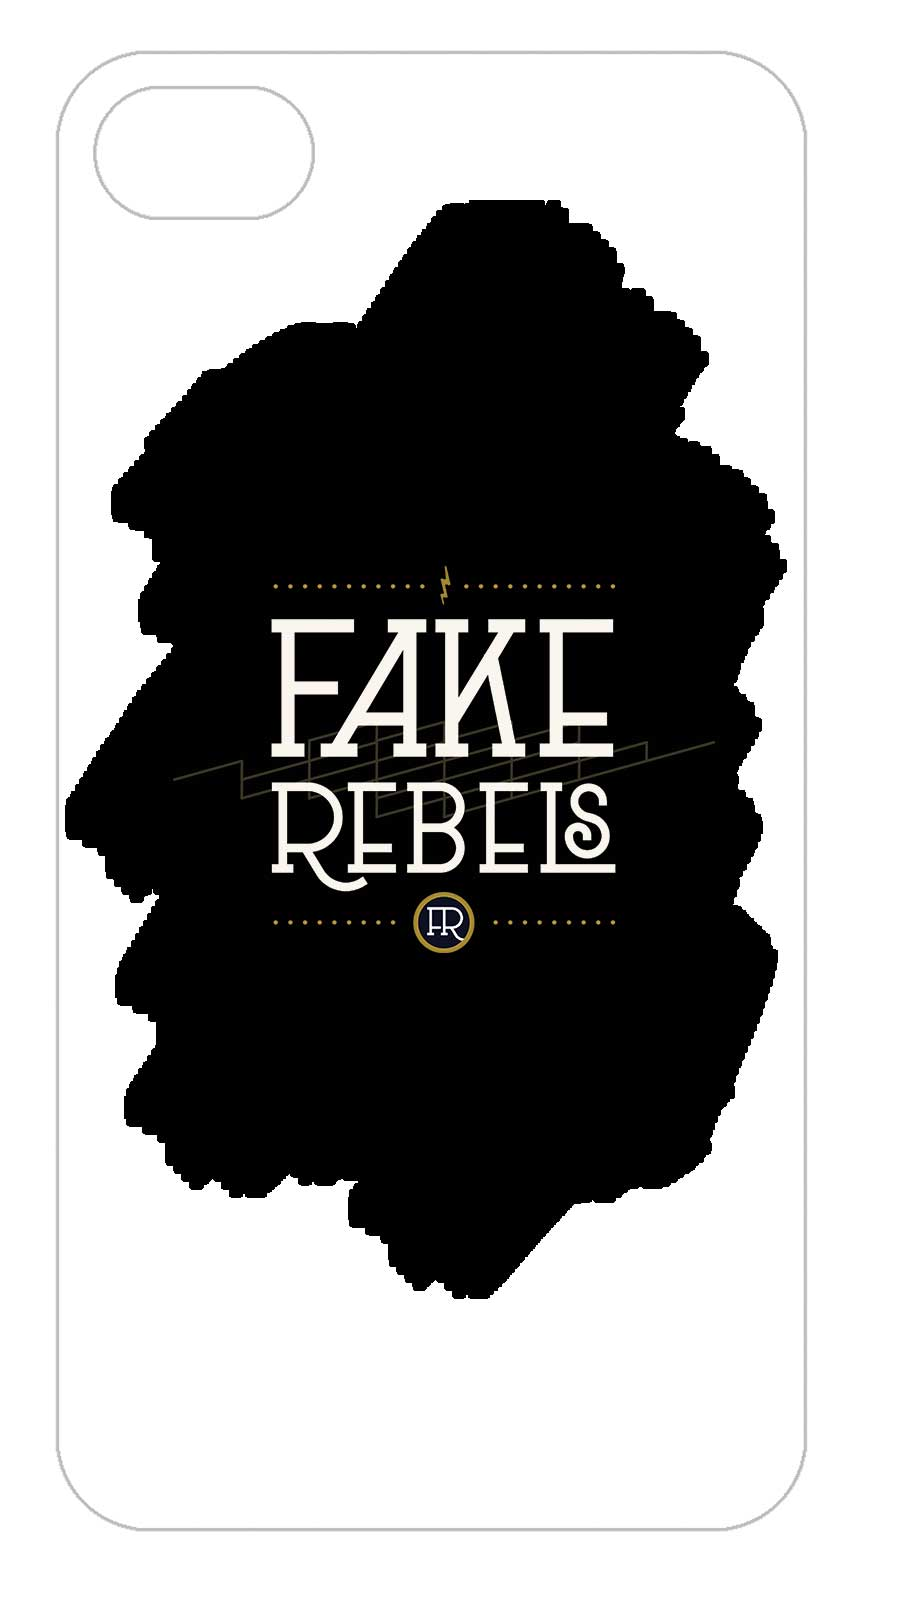 Fake Rebels - Funda Móvil Logo - Merchanfy Imprime tus camisetas